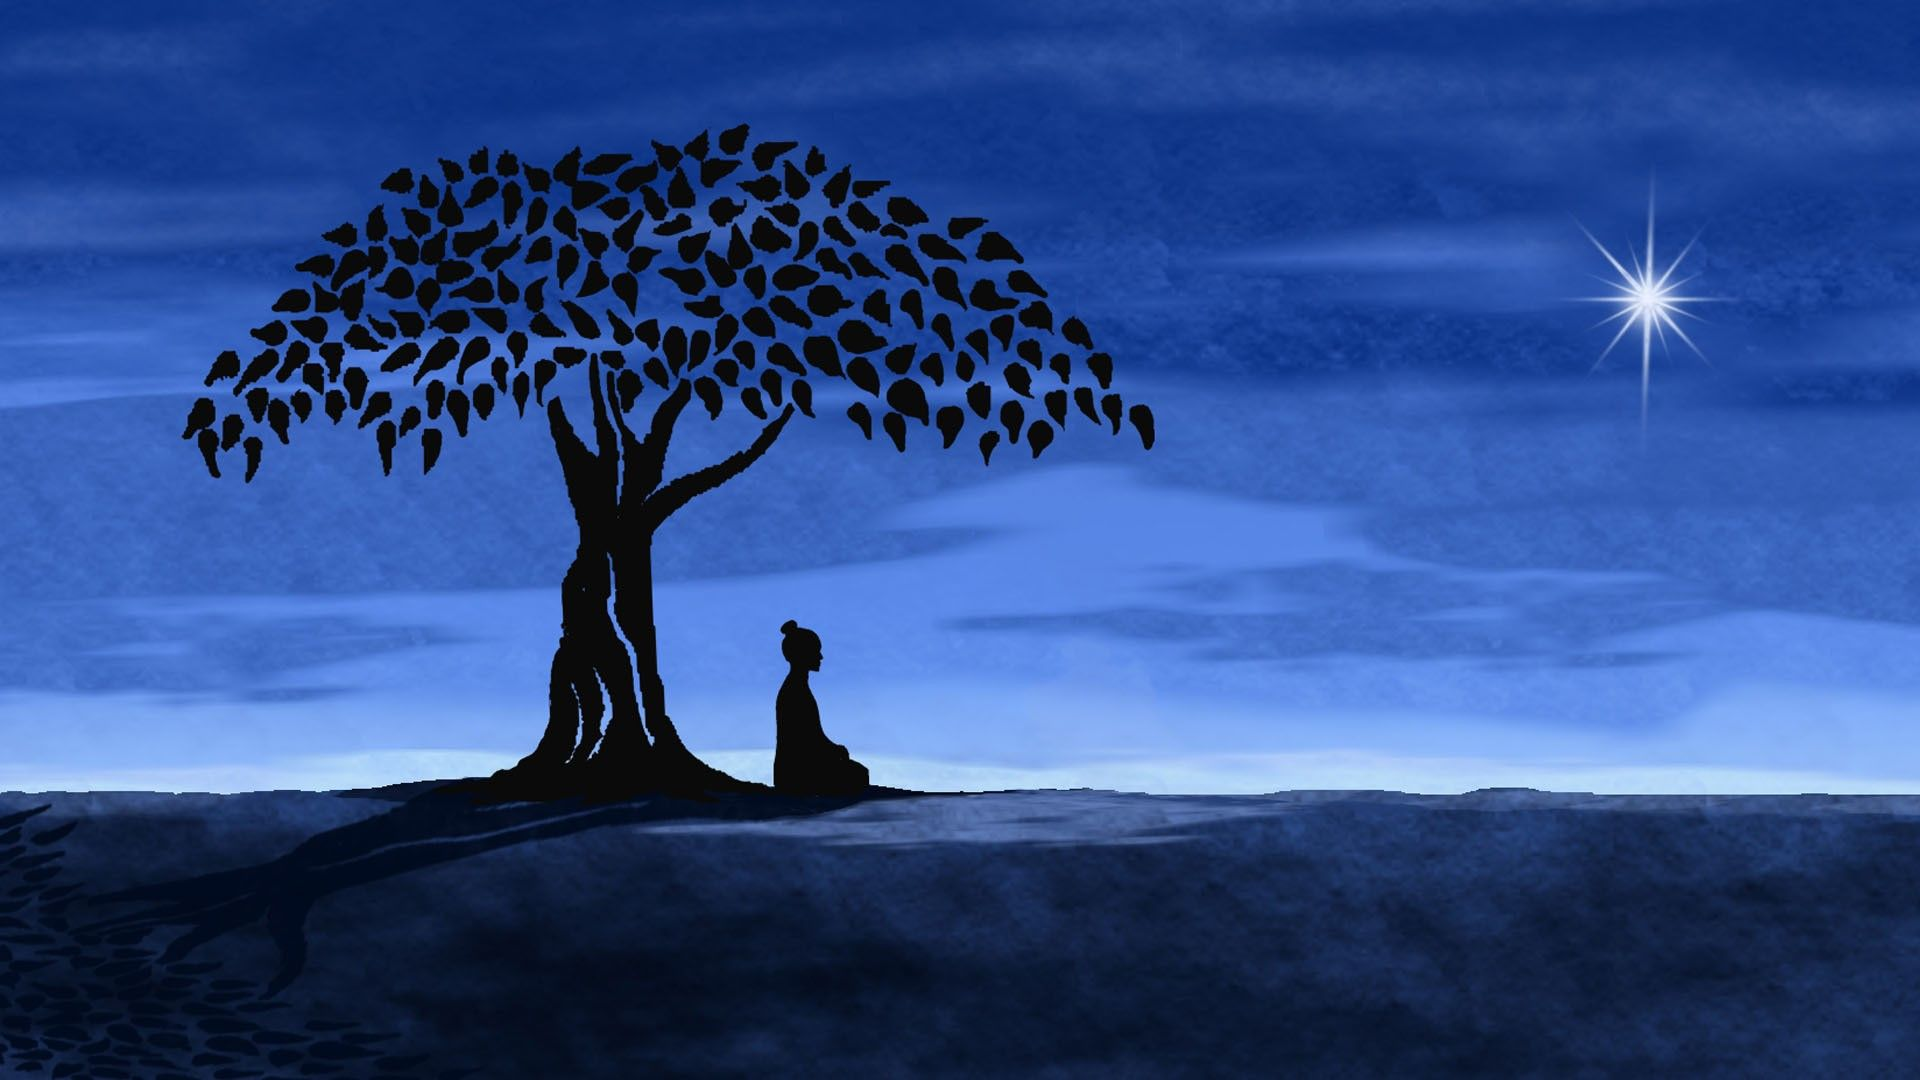 Meditation Desktop Wallpapers - Top Free Meditation Desktop ...